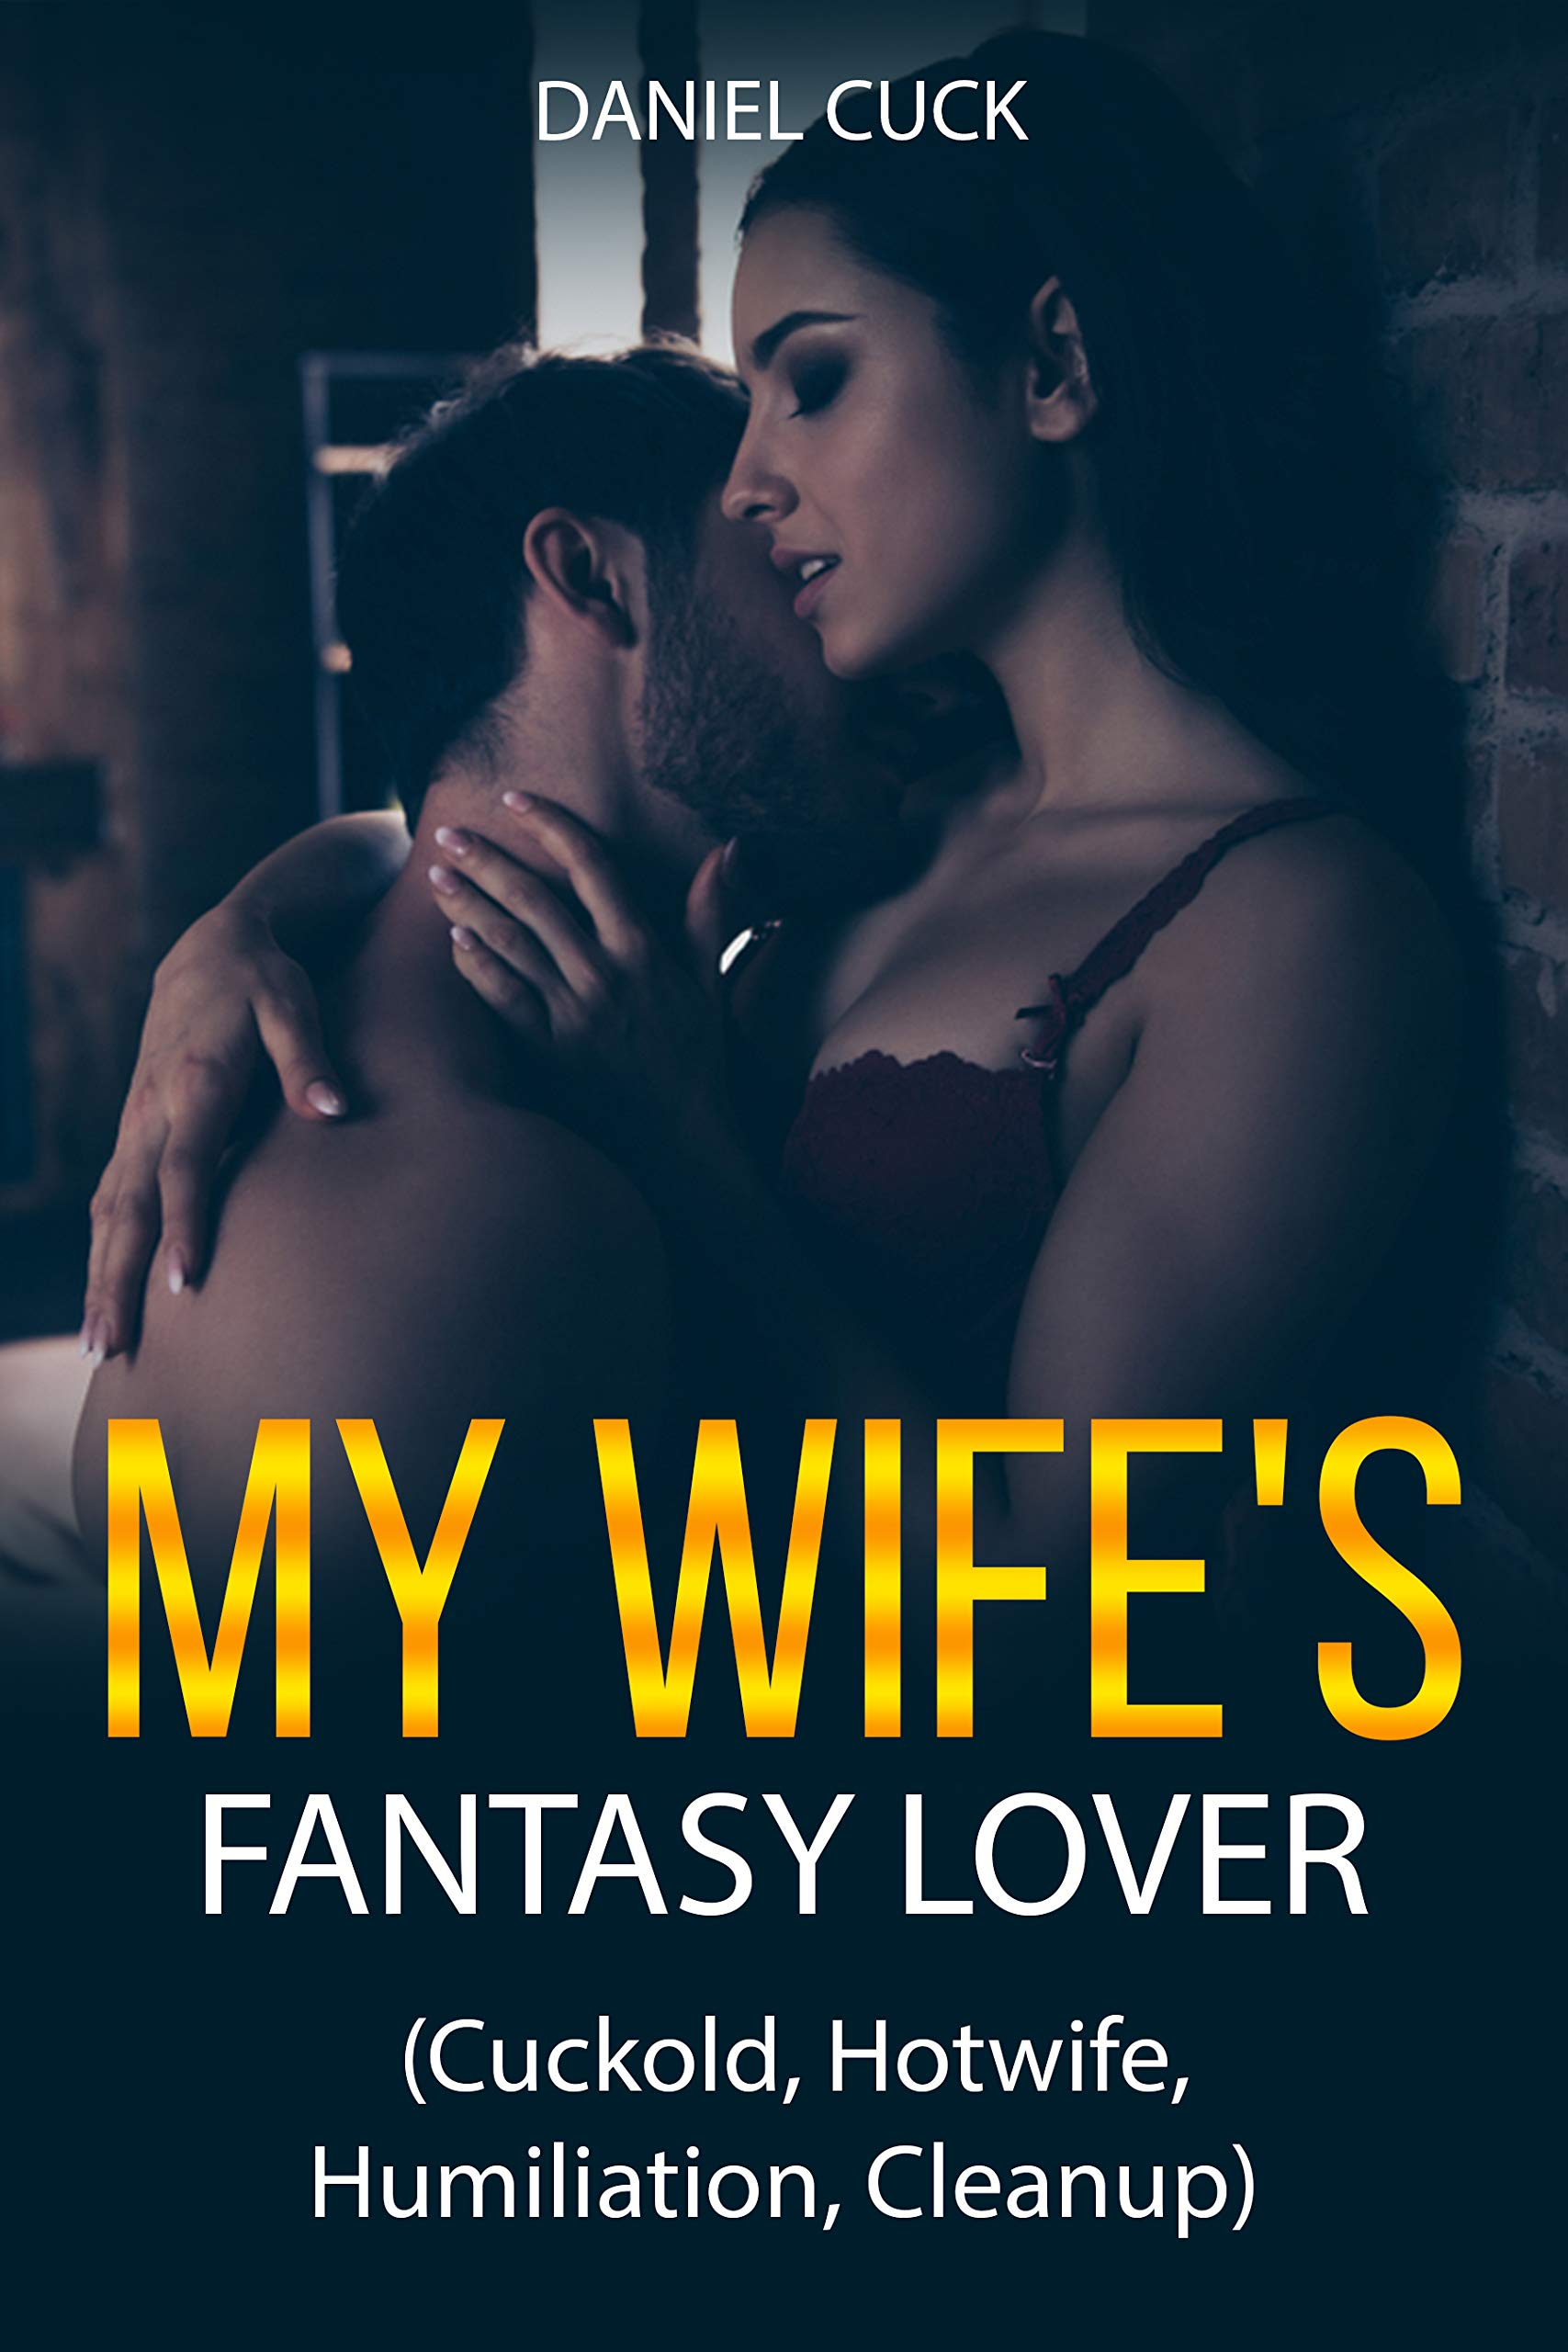 My Wife's Fantasy Lover